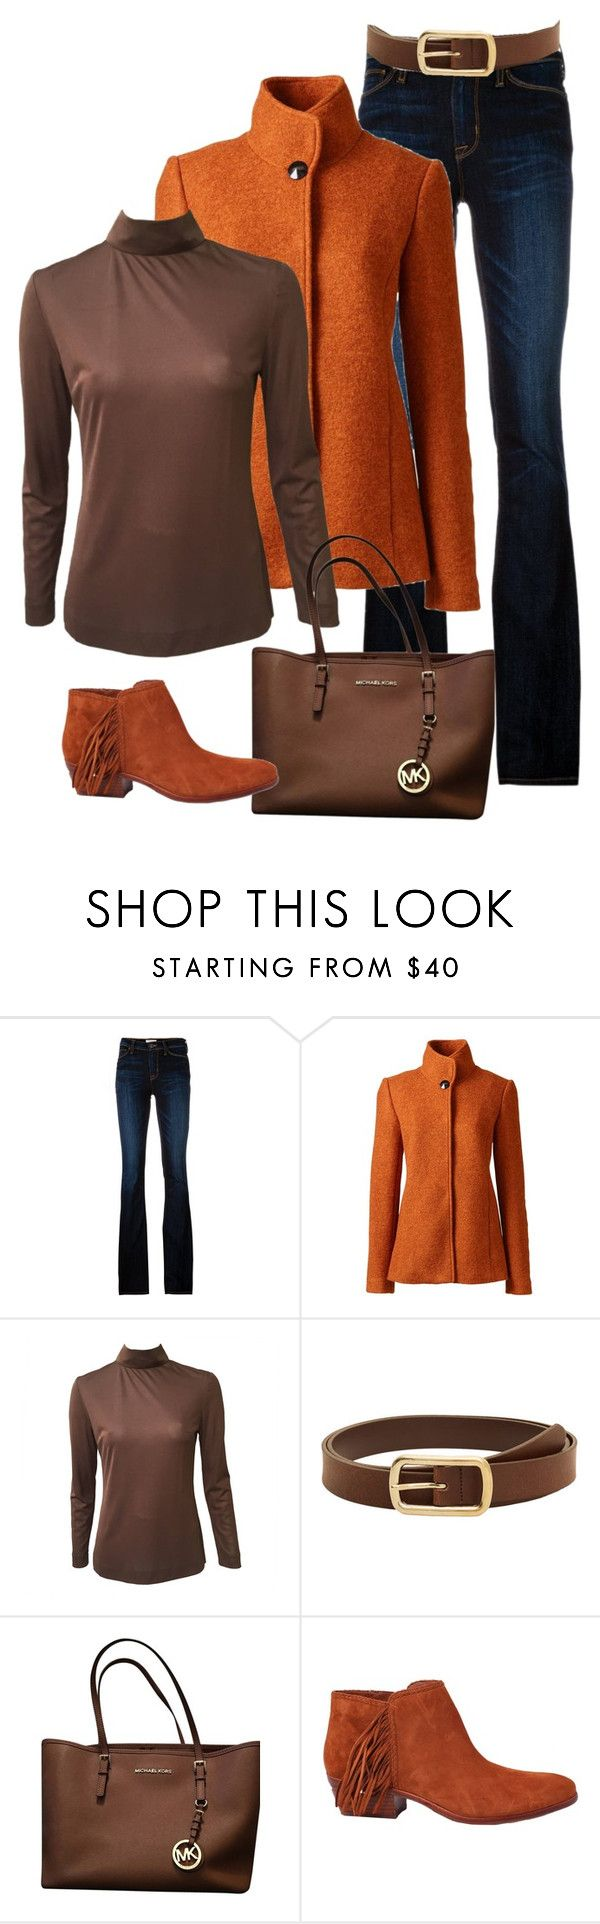 """Untitled 20"" by havlova-blanka on Polyvore featuring Hudson, Lands' End, Emilio Pucci, Violeta by Mango, Michael Kors and Sam Edelman"